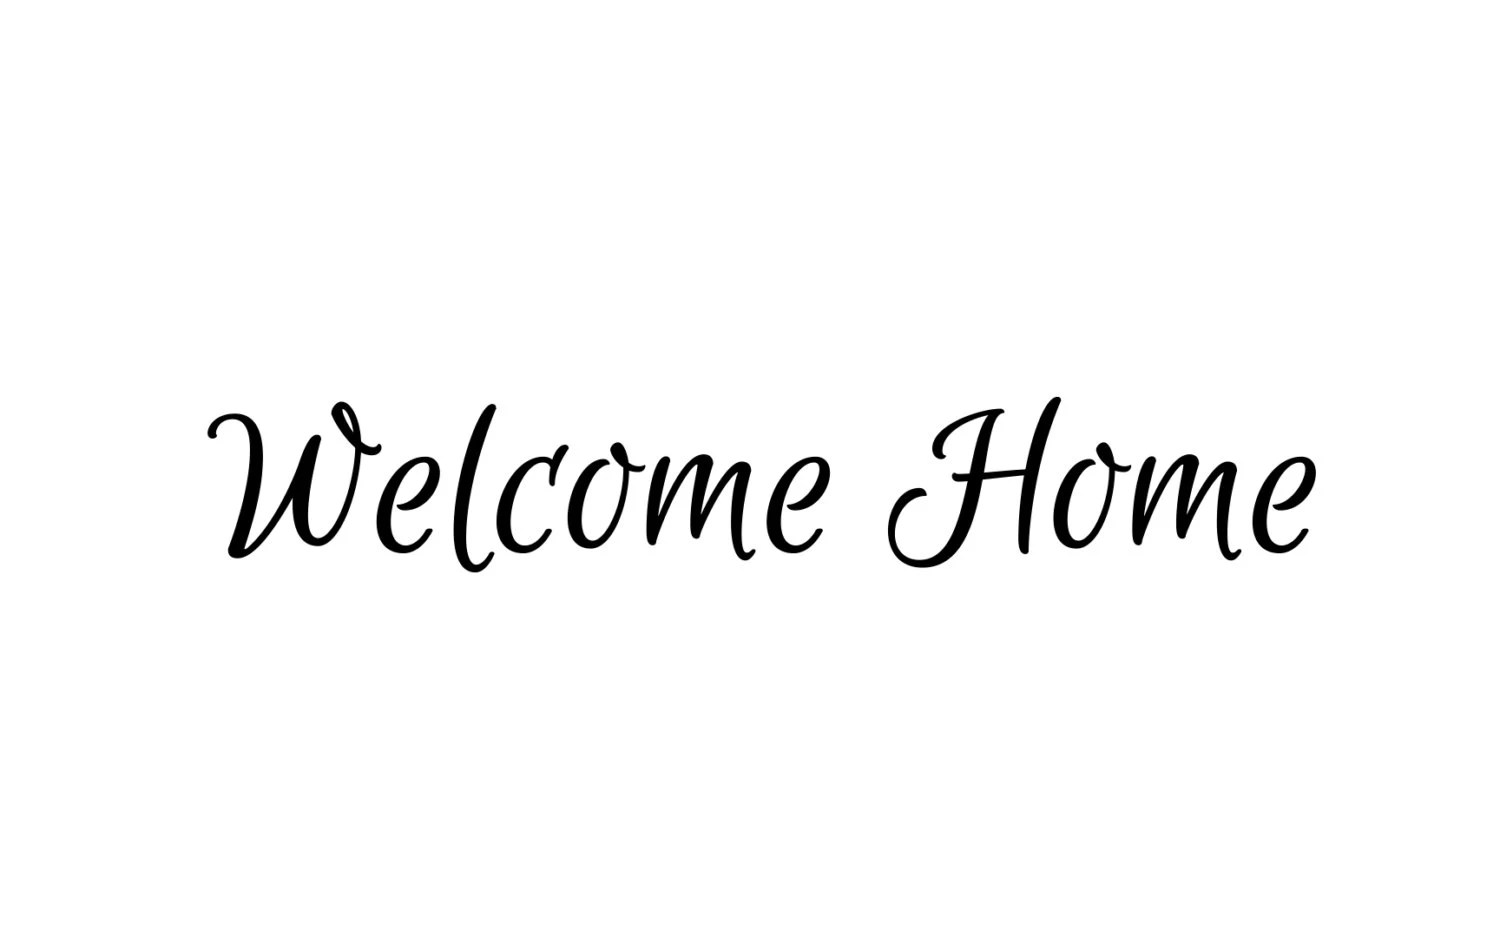 Welcome Home - Home Decor Vinyl DIY Sign Decal - Graphic - Select Color